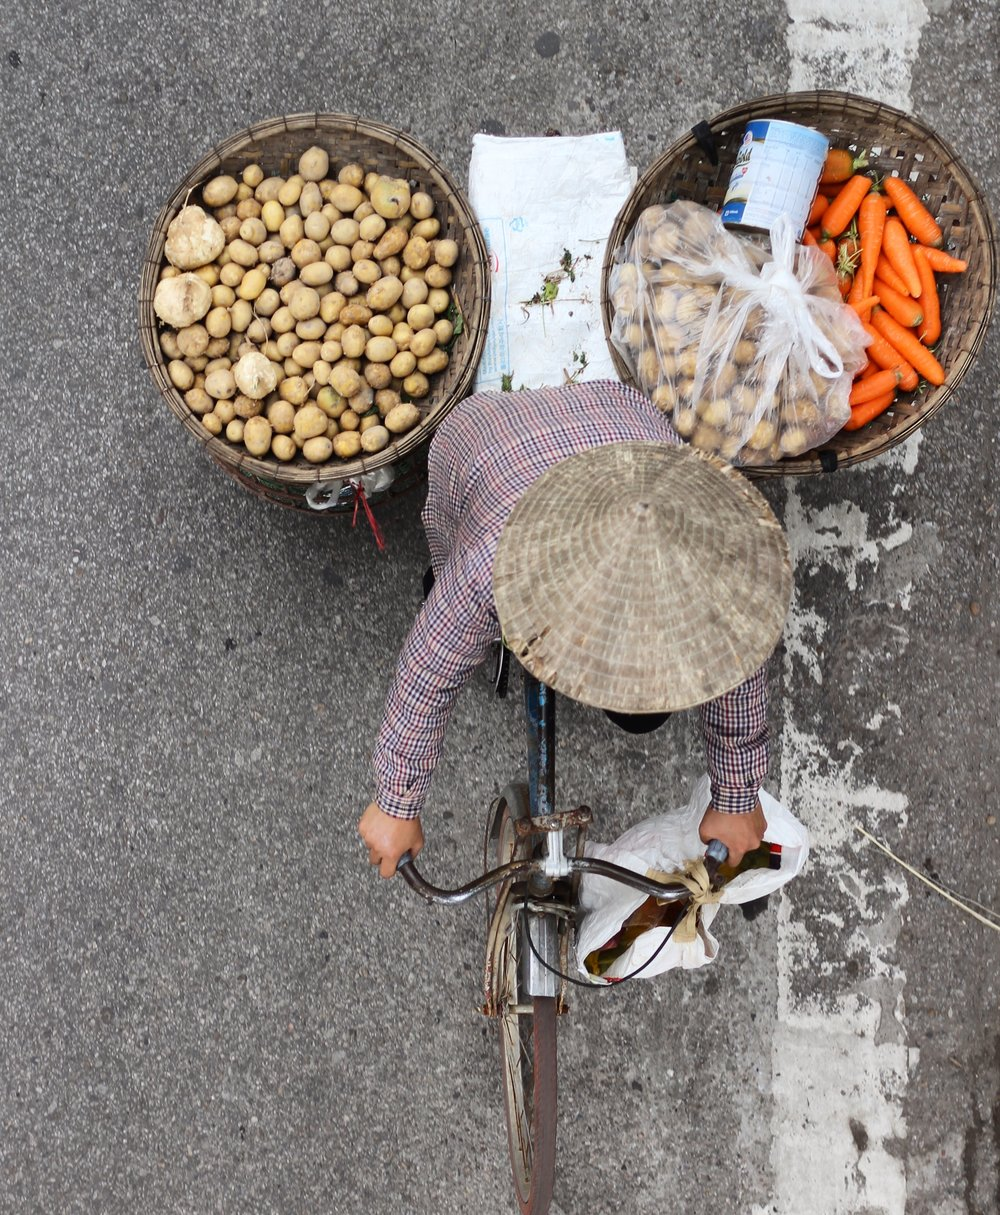 A woman biking through Hanoi with her vegetables.